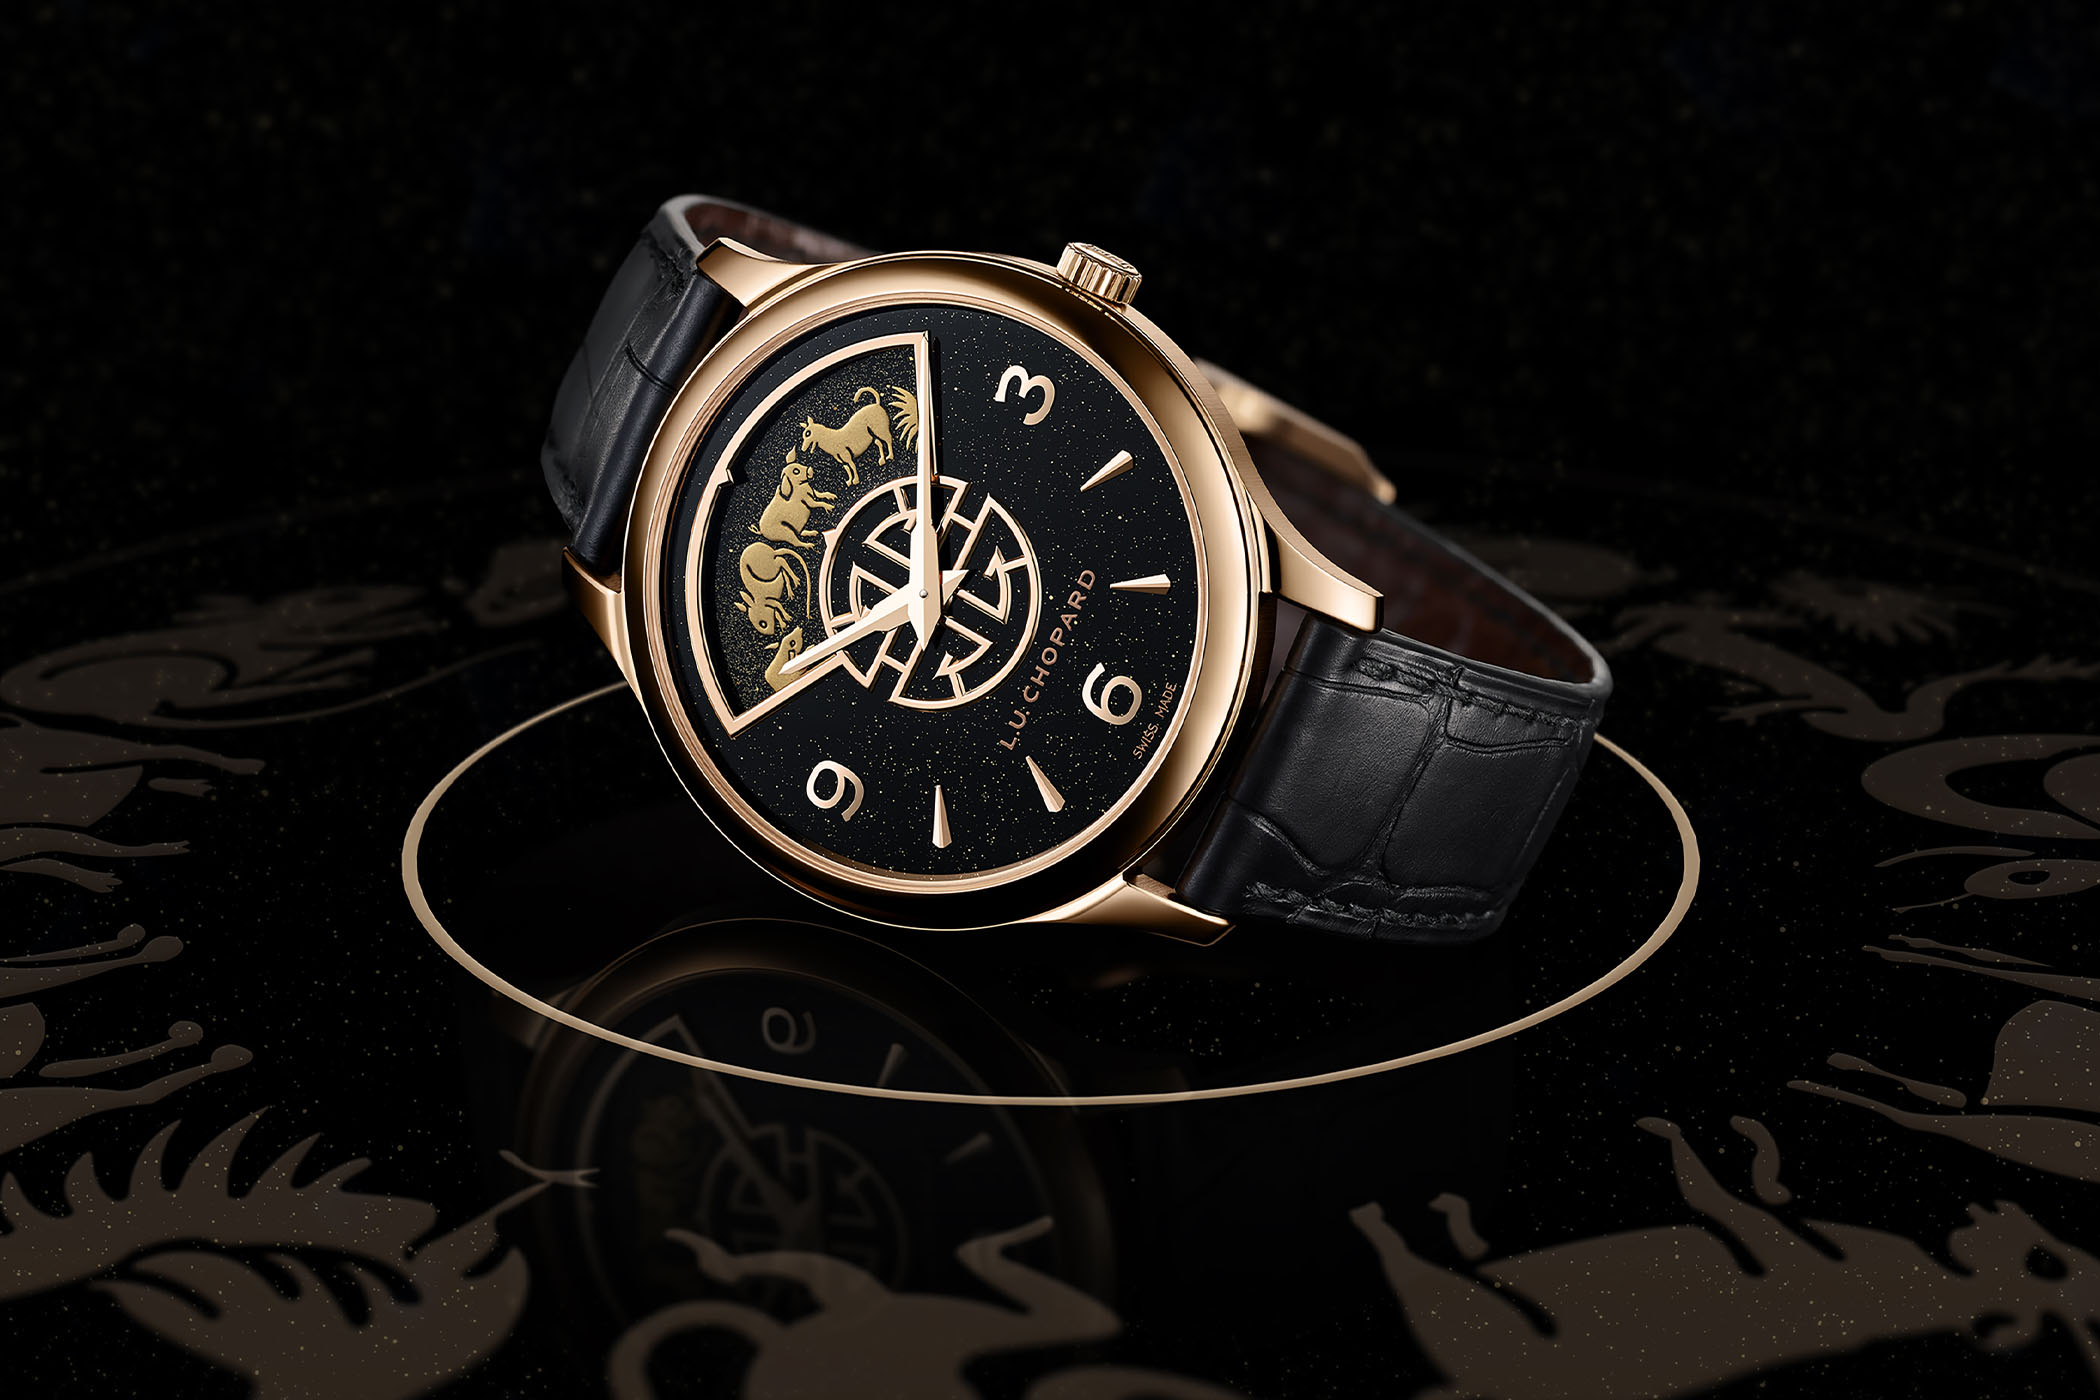 Chopard L.U.C Urushi Watches for Chinese Year of the Ox